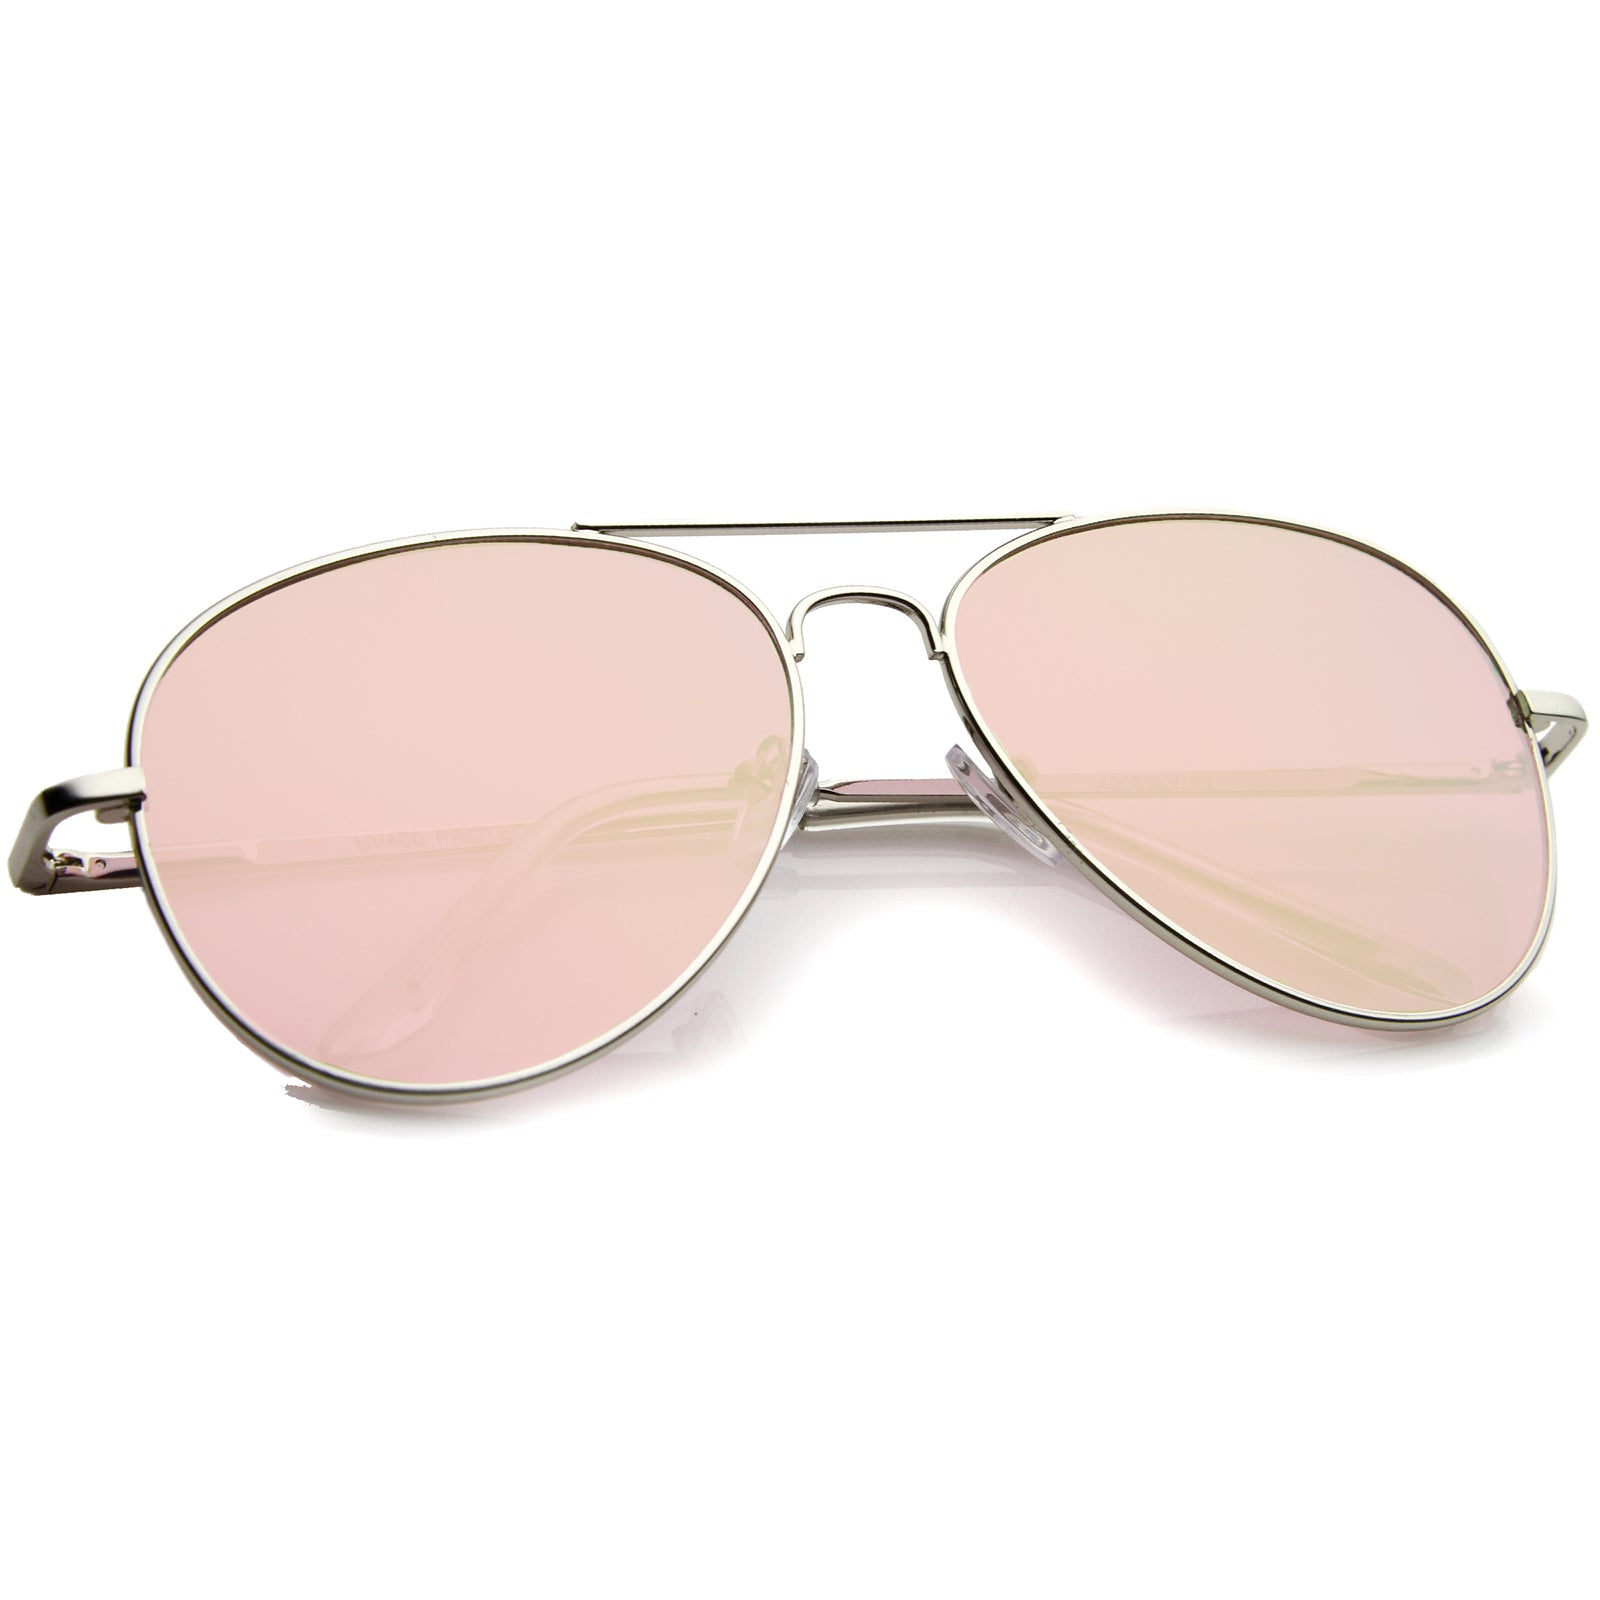 Small Full Metal Color Mirror Teardrop Flat Lens Aviator Sunglasses 56mm - sunglass.la - 4